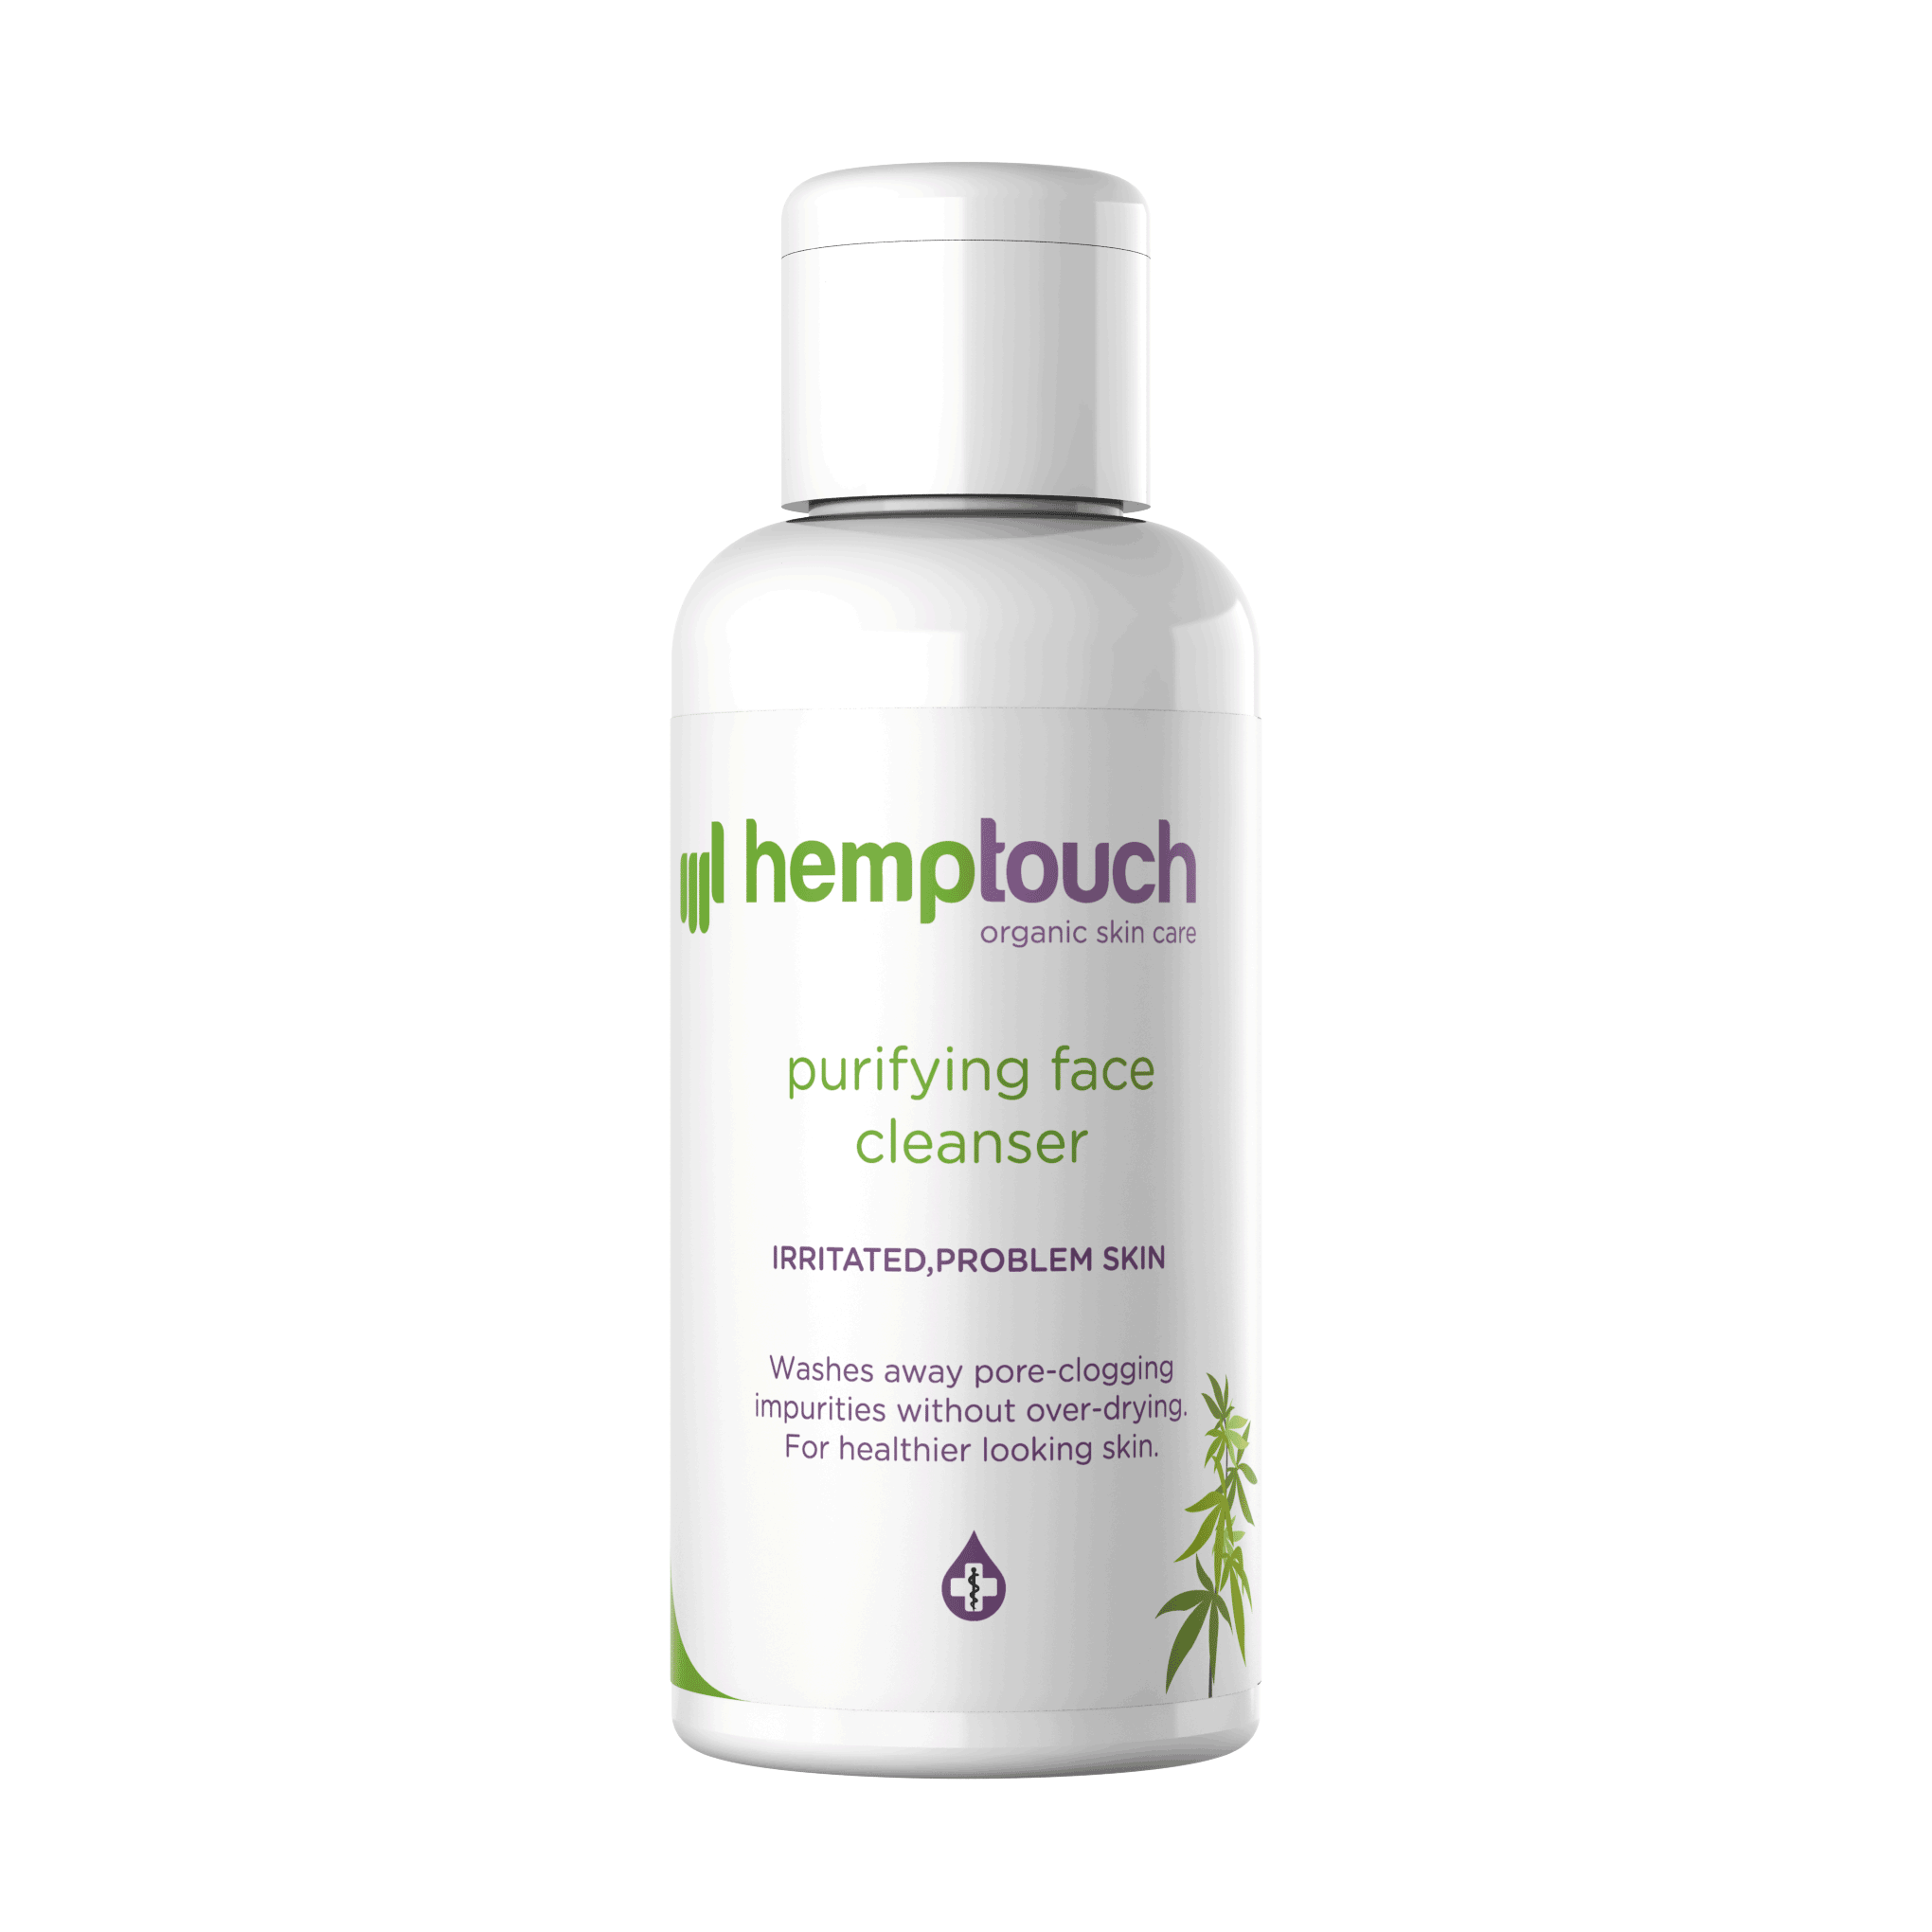 hemptouch cleanser – Eatonslater.com Health food & online health store